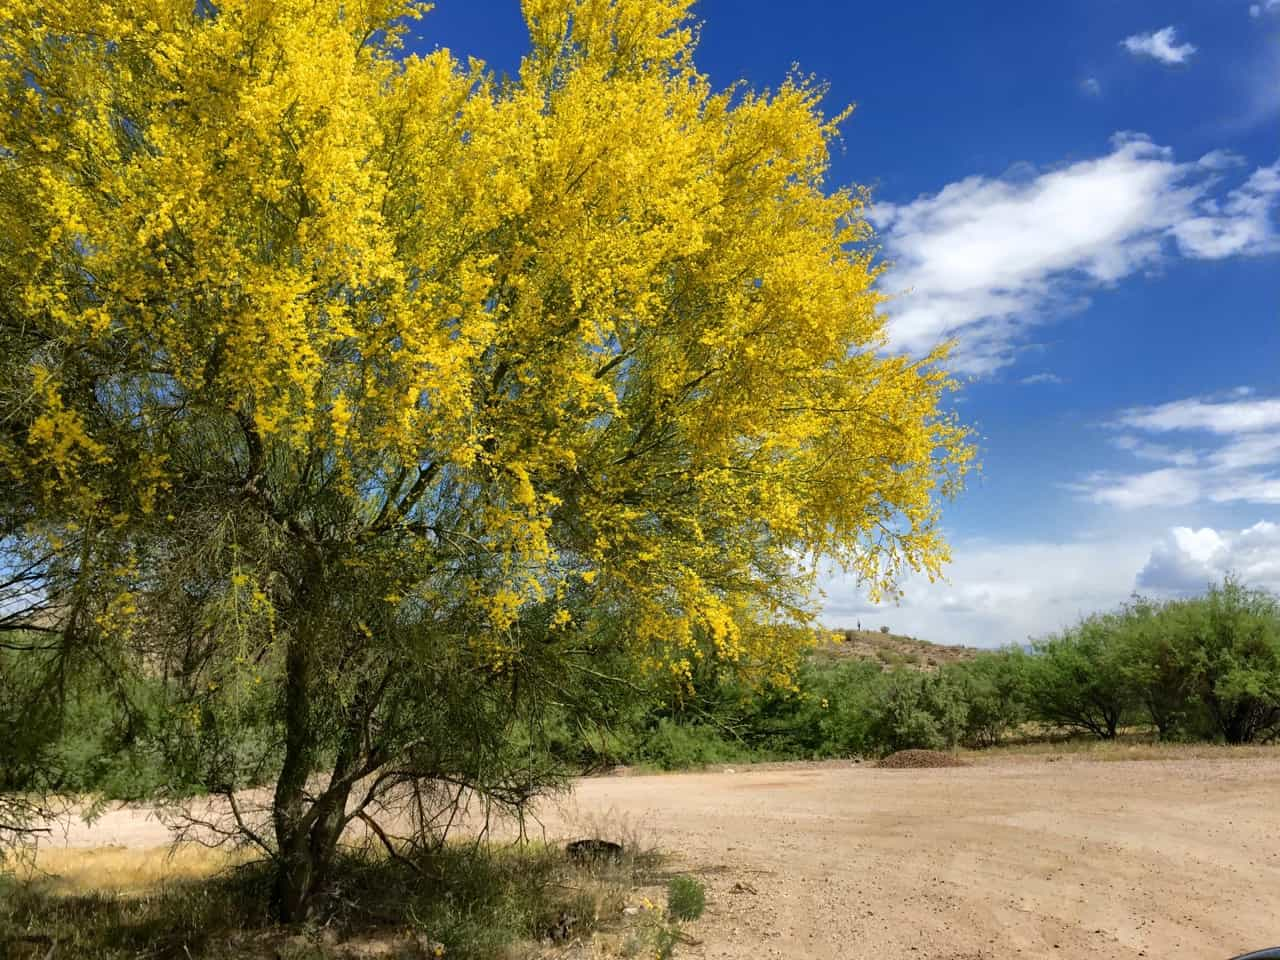 Palo Verde in full bloom near Phoenix Arizona